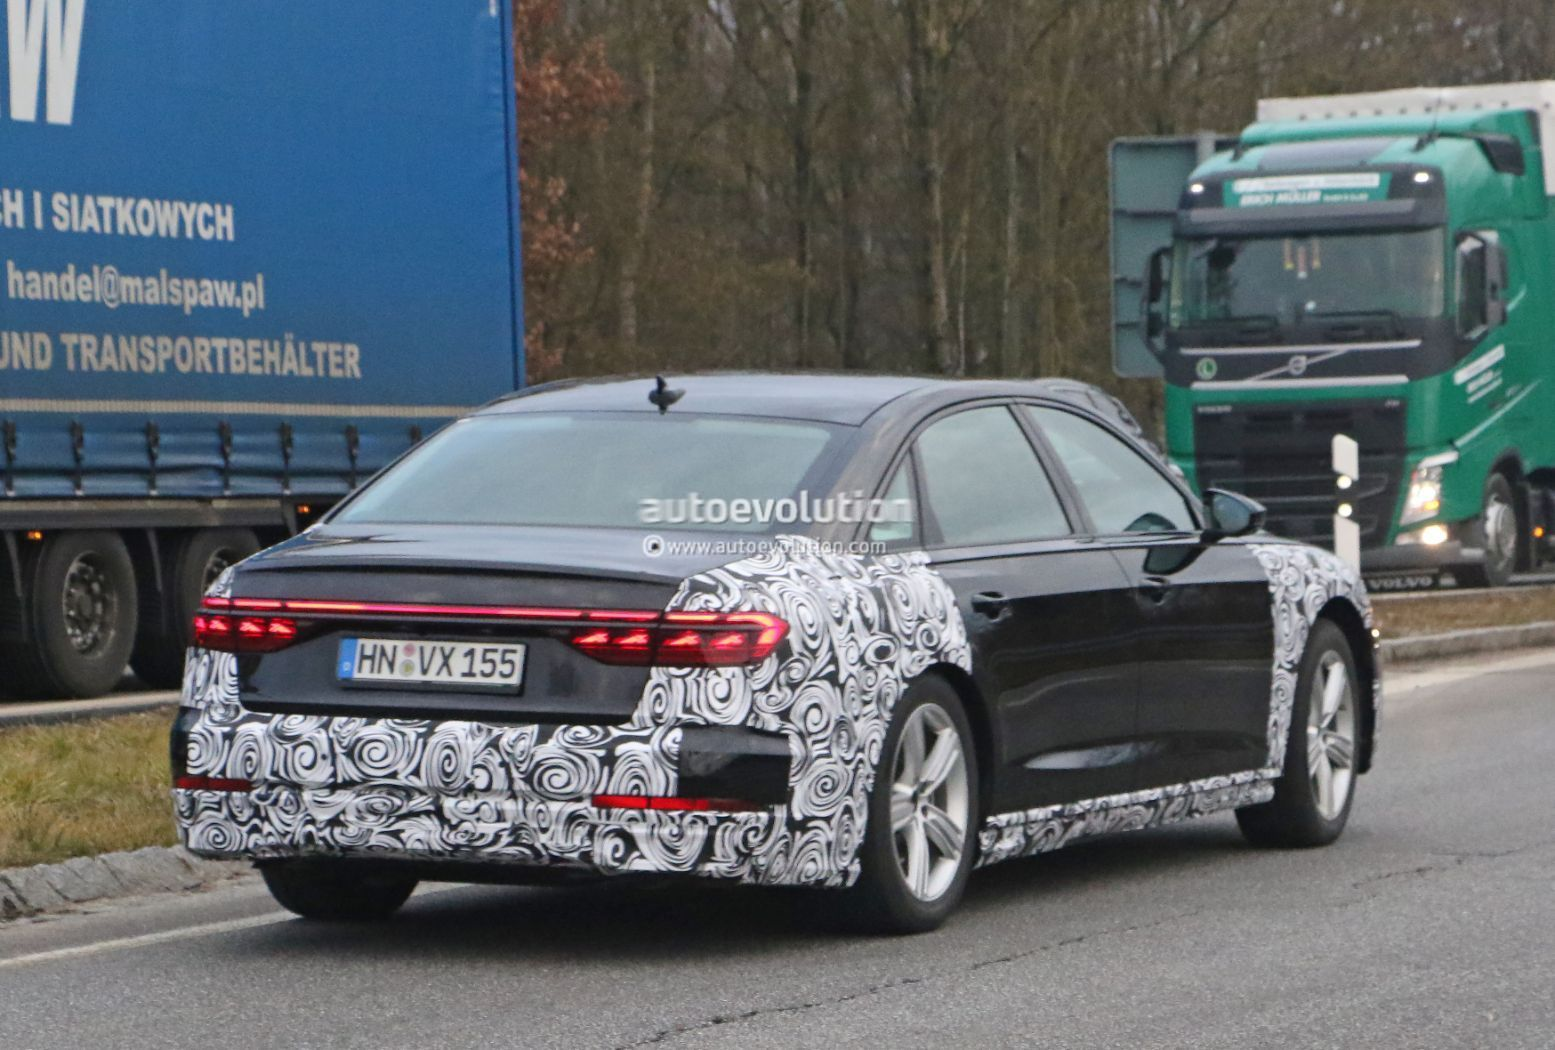 2022 audi a8 facelift to resurrect horch brand for ultra